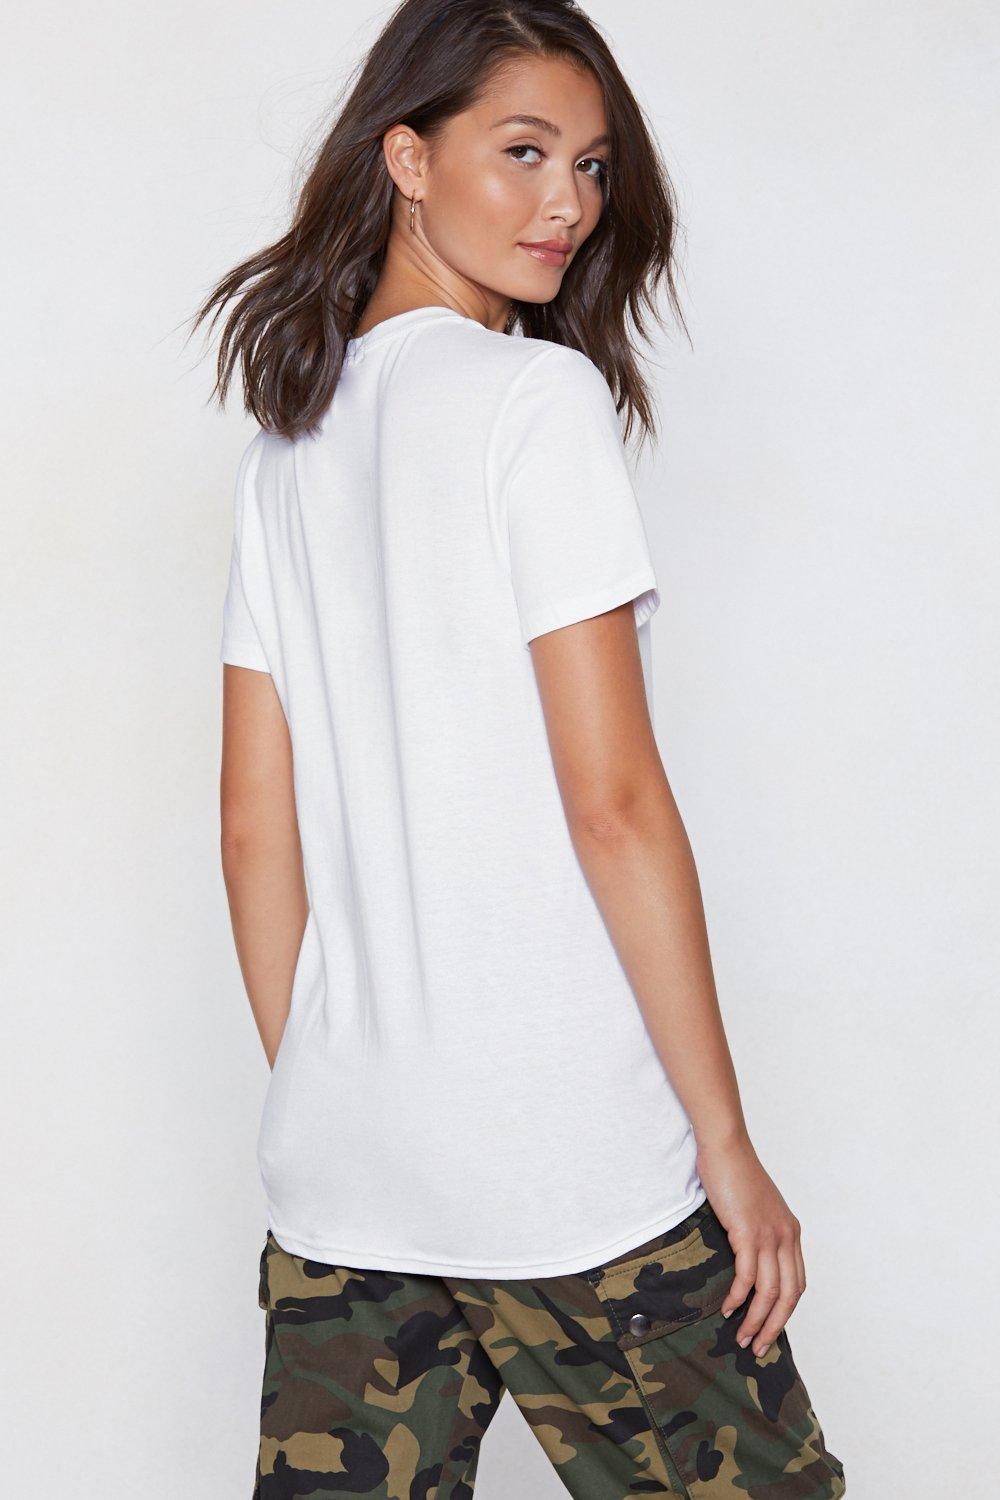 dbd9ea65 Rumours Tee | Shop Clothes at Nasty Gal!